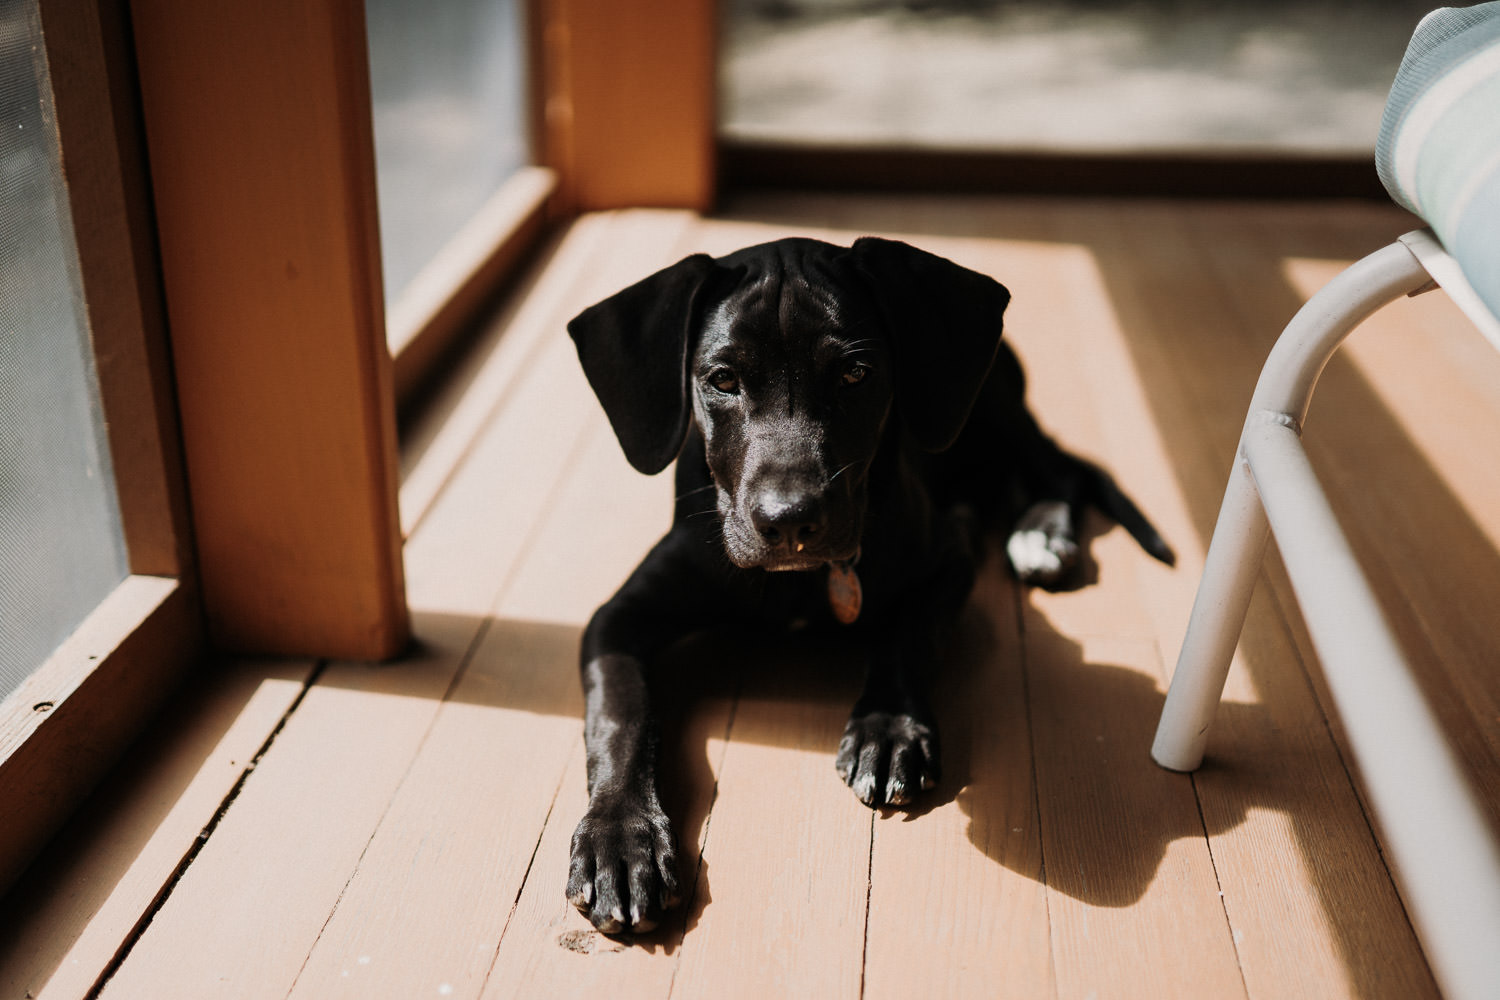 A dog sunbathes on the porch.